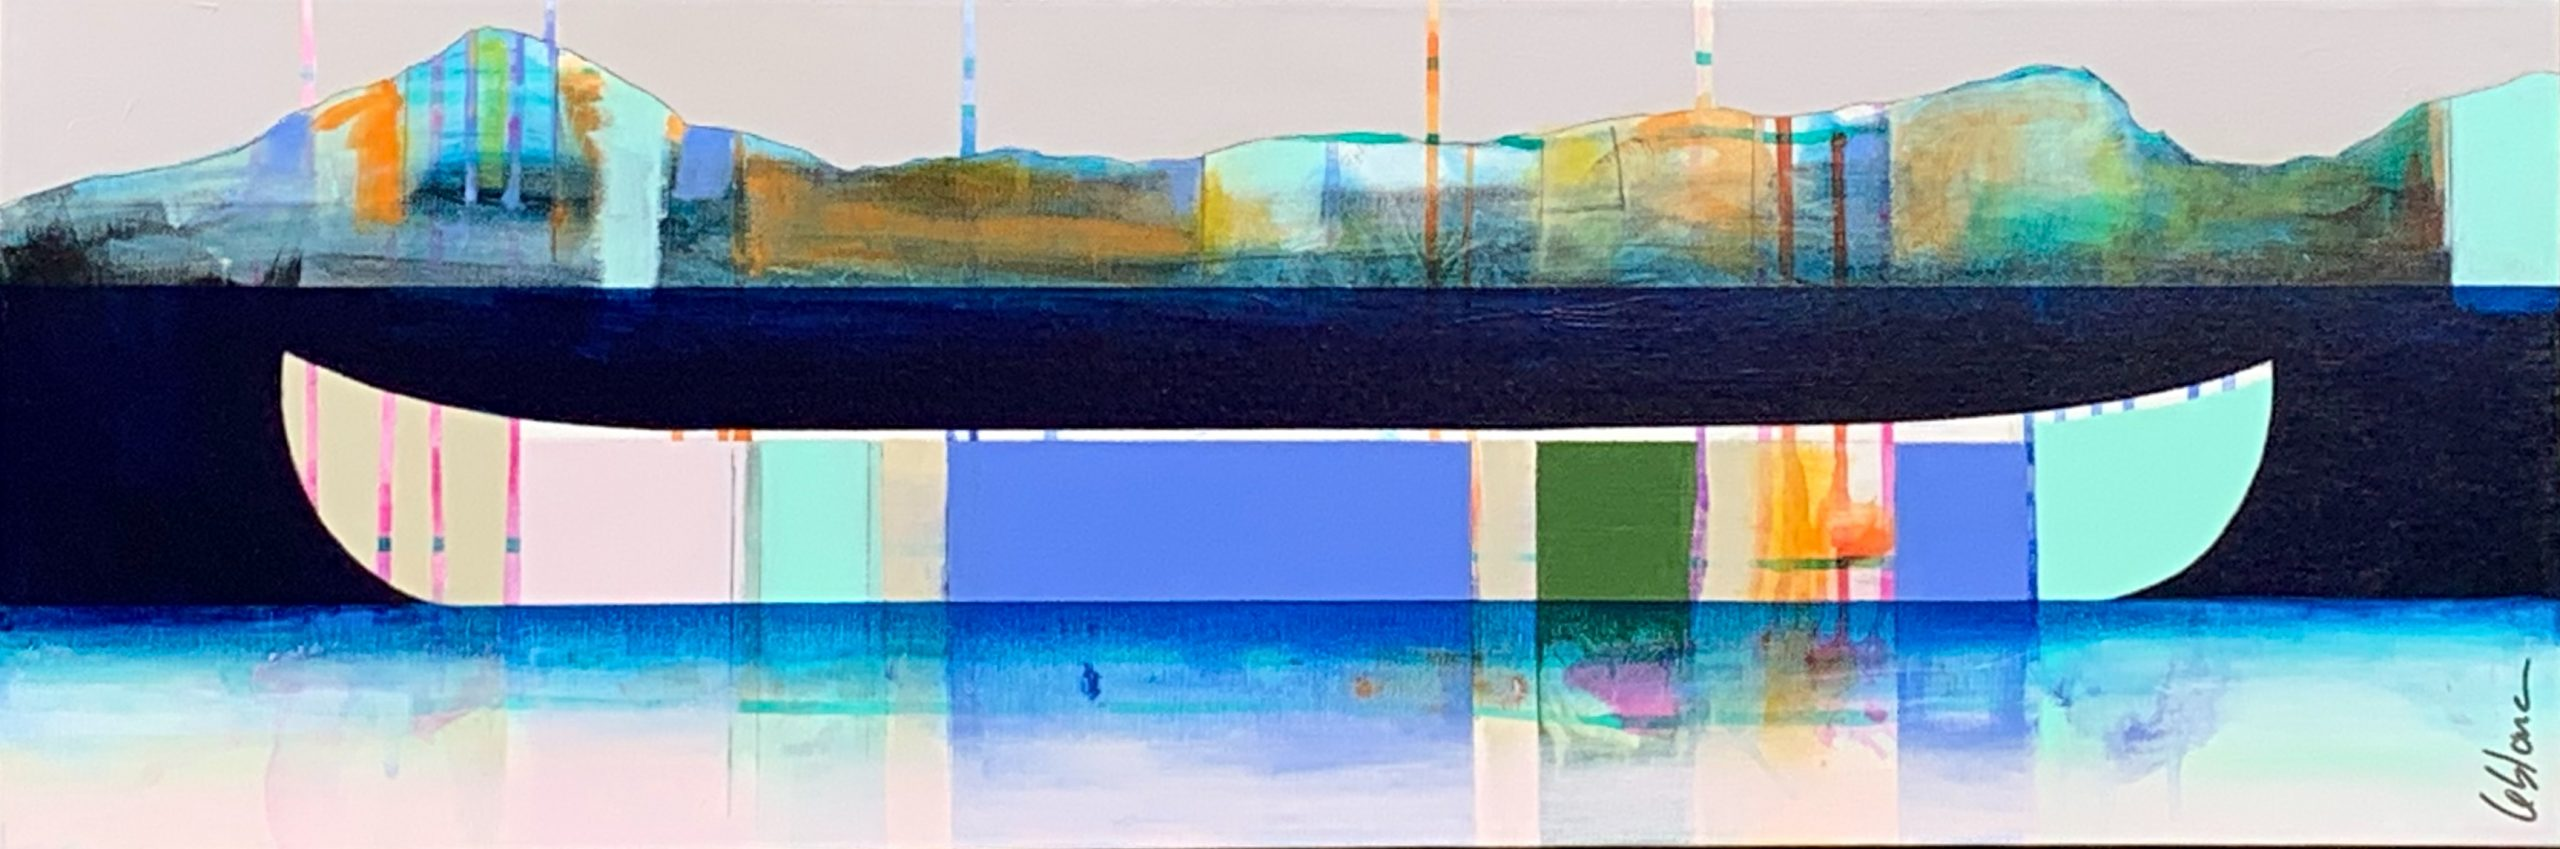 Distance, mixed media canoe painting by Sylvain Leblanc | Effusion Art Gallery + Cast Glass Studio, Invermere BC